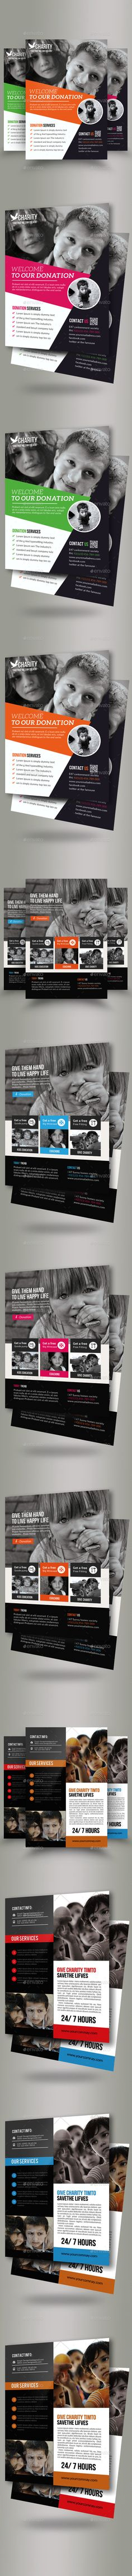 Charity & Donation Flyer Bundle by Business_Flyers Features: Photoshop cs5 is used to create this file 8.5×11 inches size 0.25 Inches Bleed CMYK Color Editable Vector & Color Font